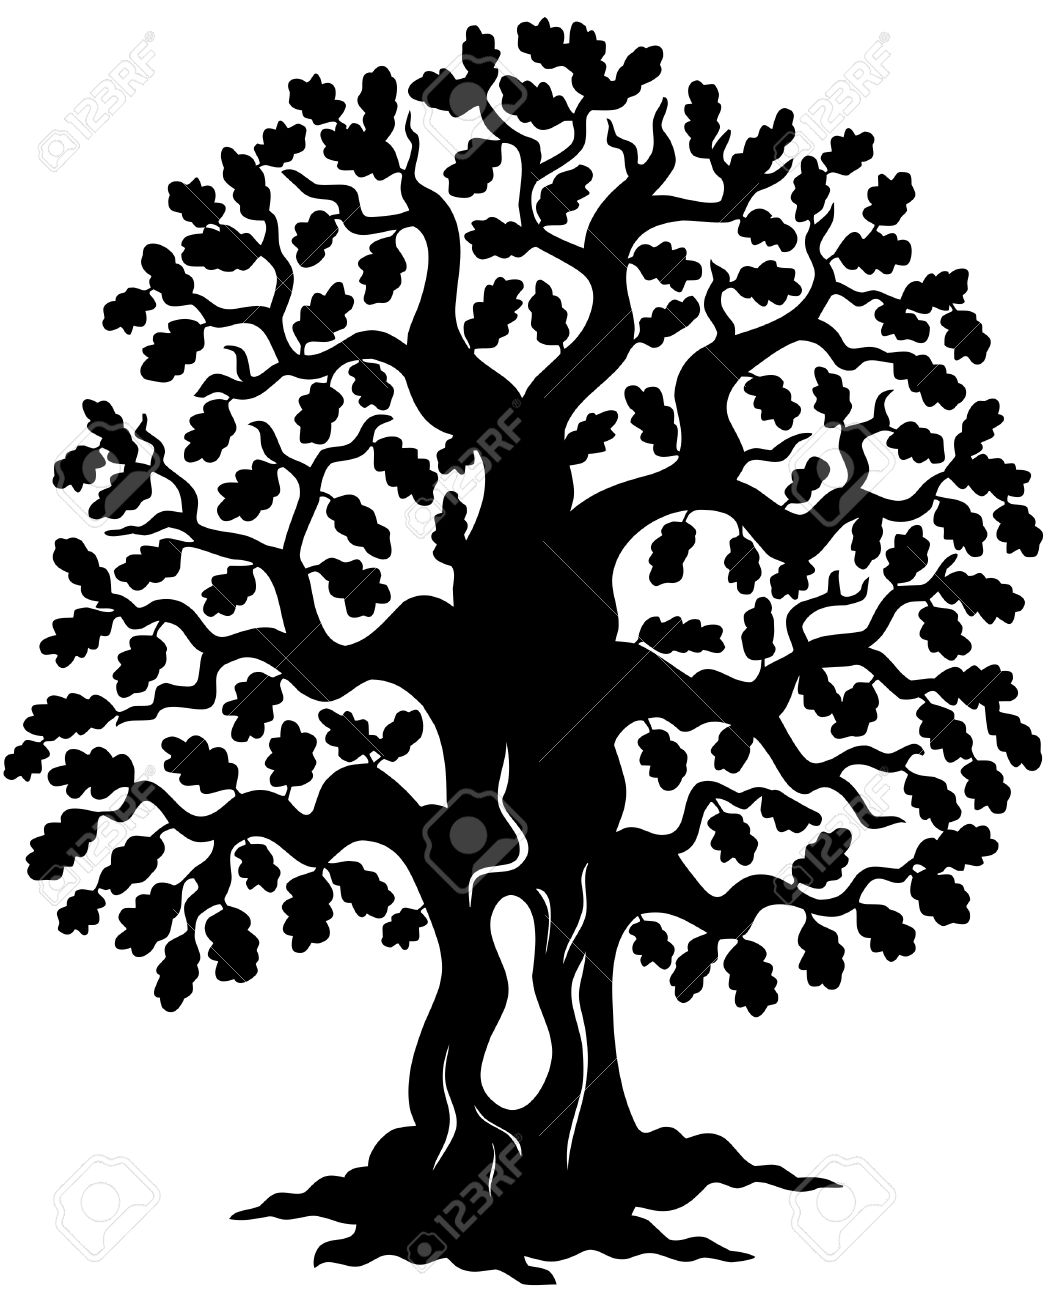 oak tree silhouette royalty free cliparts vectors and stock rh 123rf com